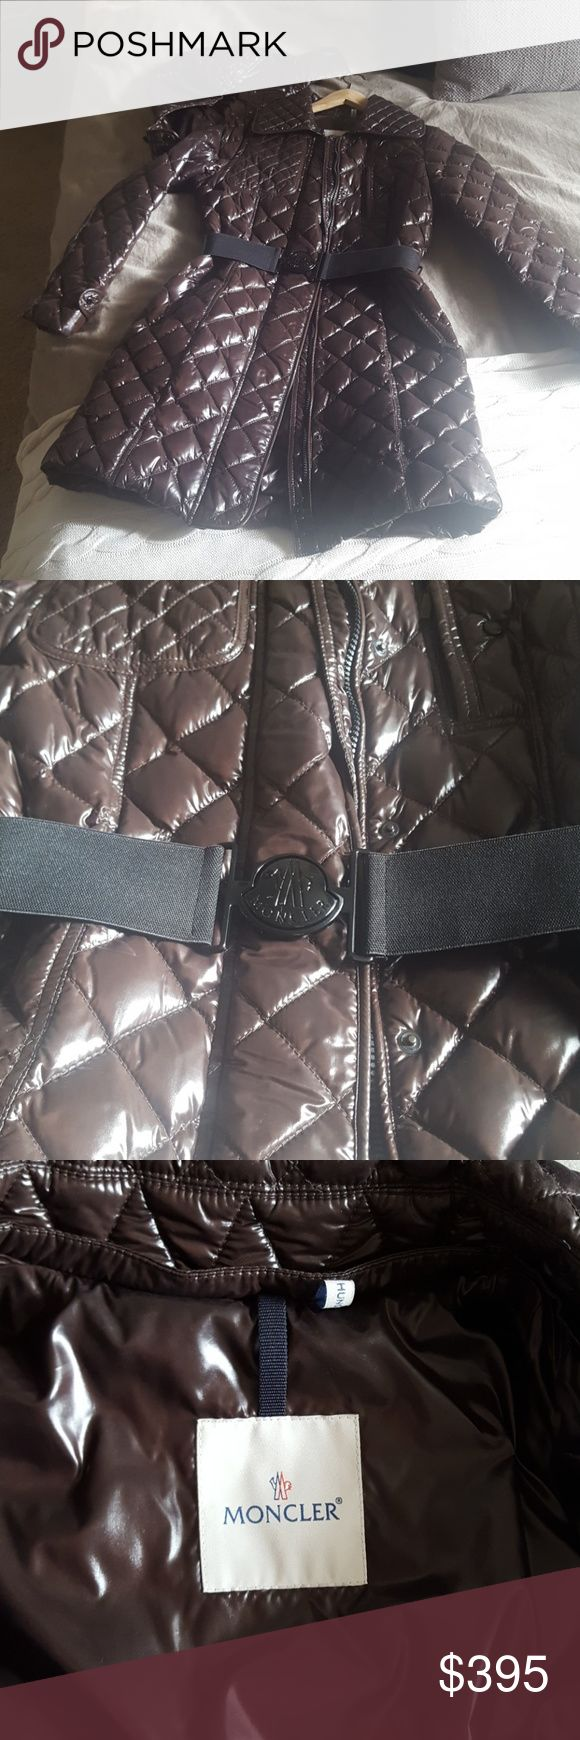 Moncler coat Perfect condition size 2 100 Authentic Price